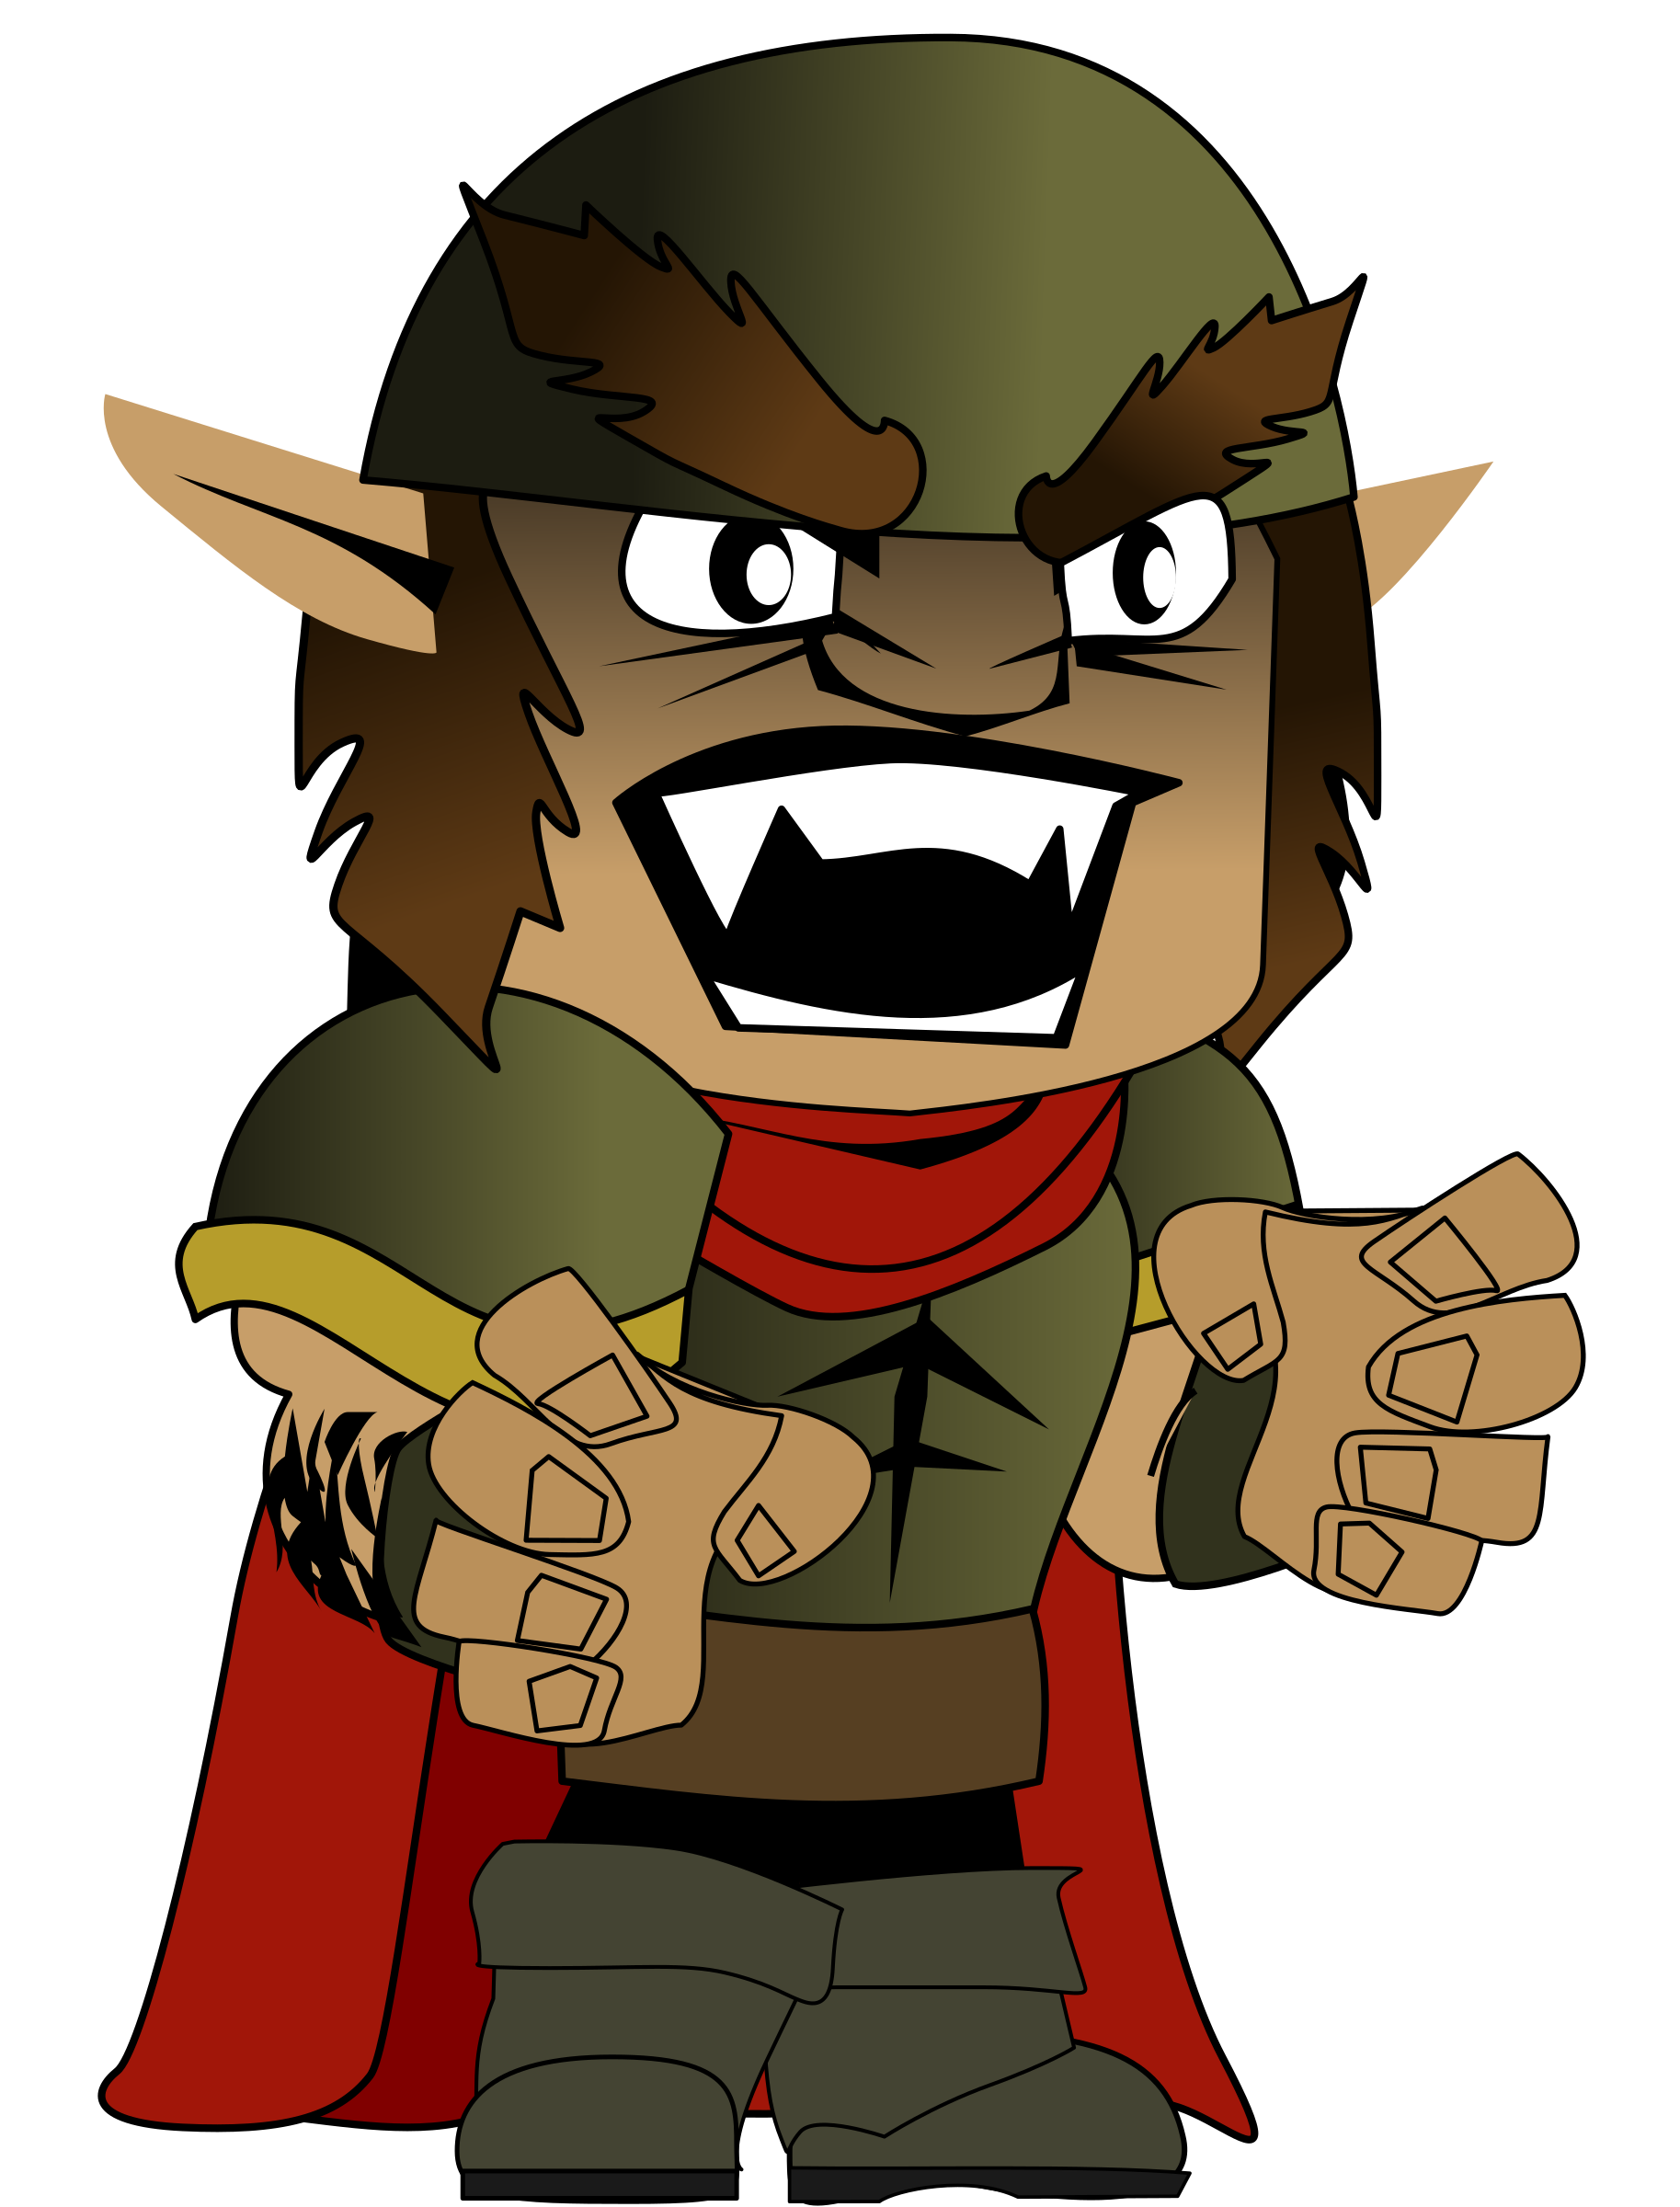 Orc clipart #9, Download drawings